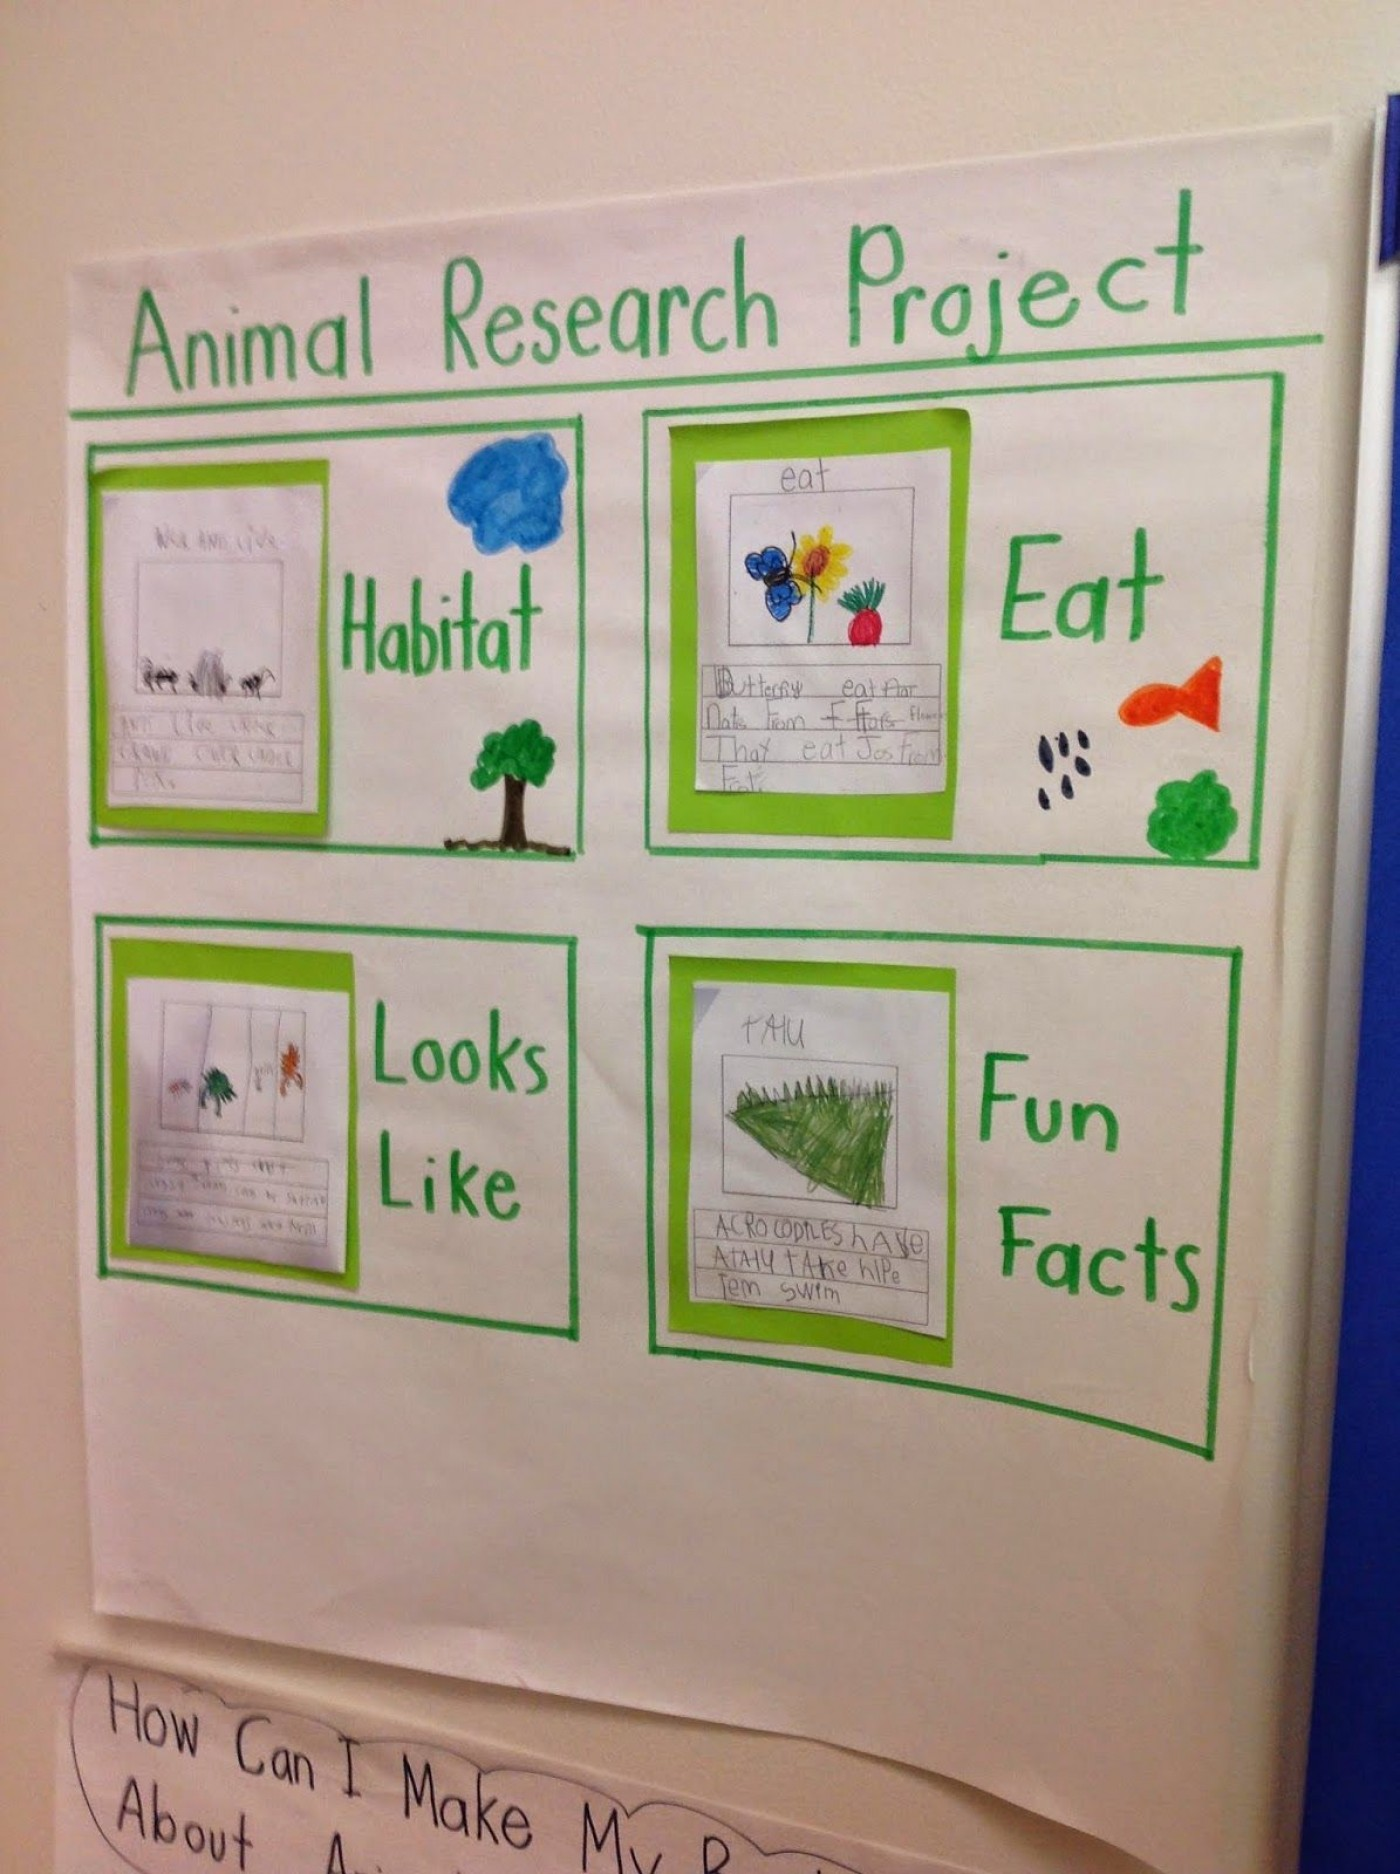 001 Research Paper Animal Awful Ideas Project College Behaviour 1400